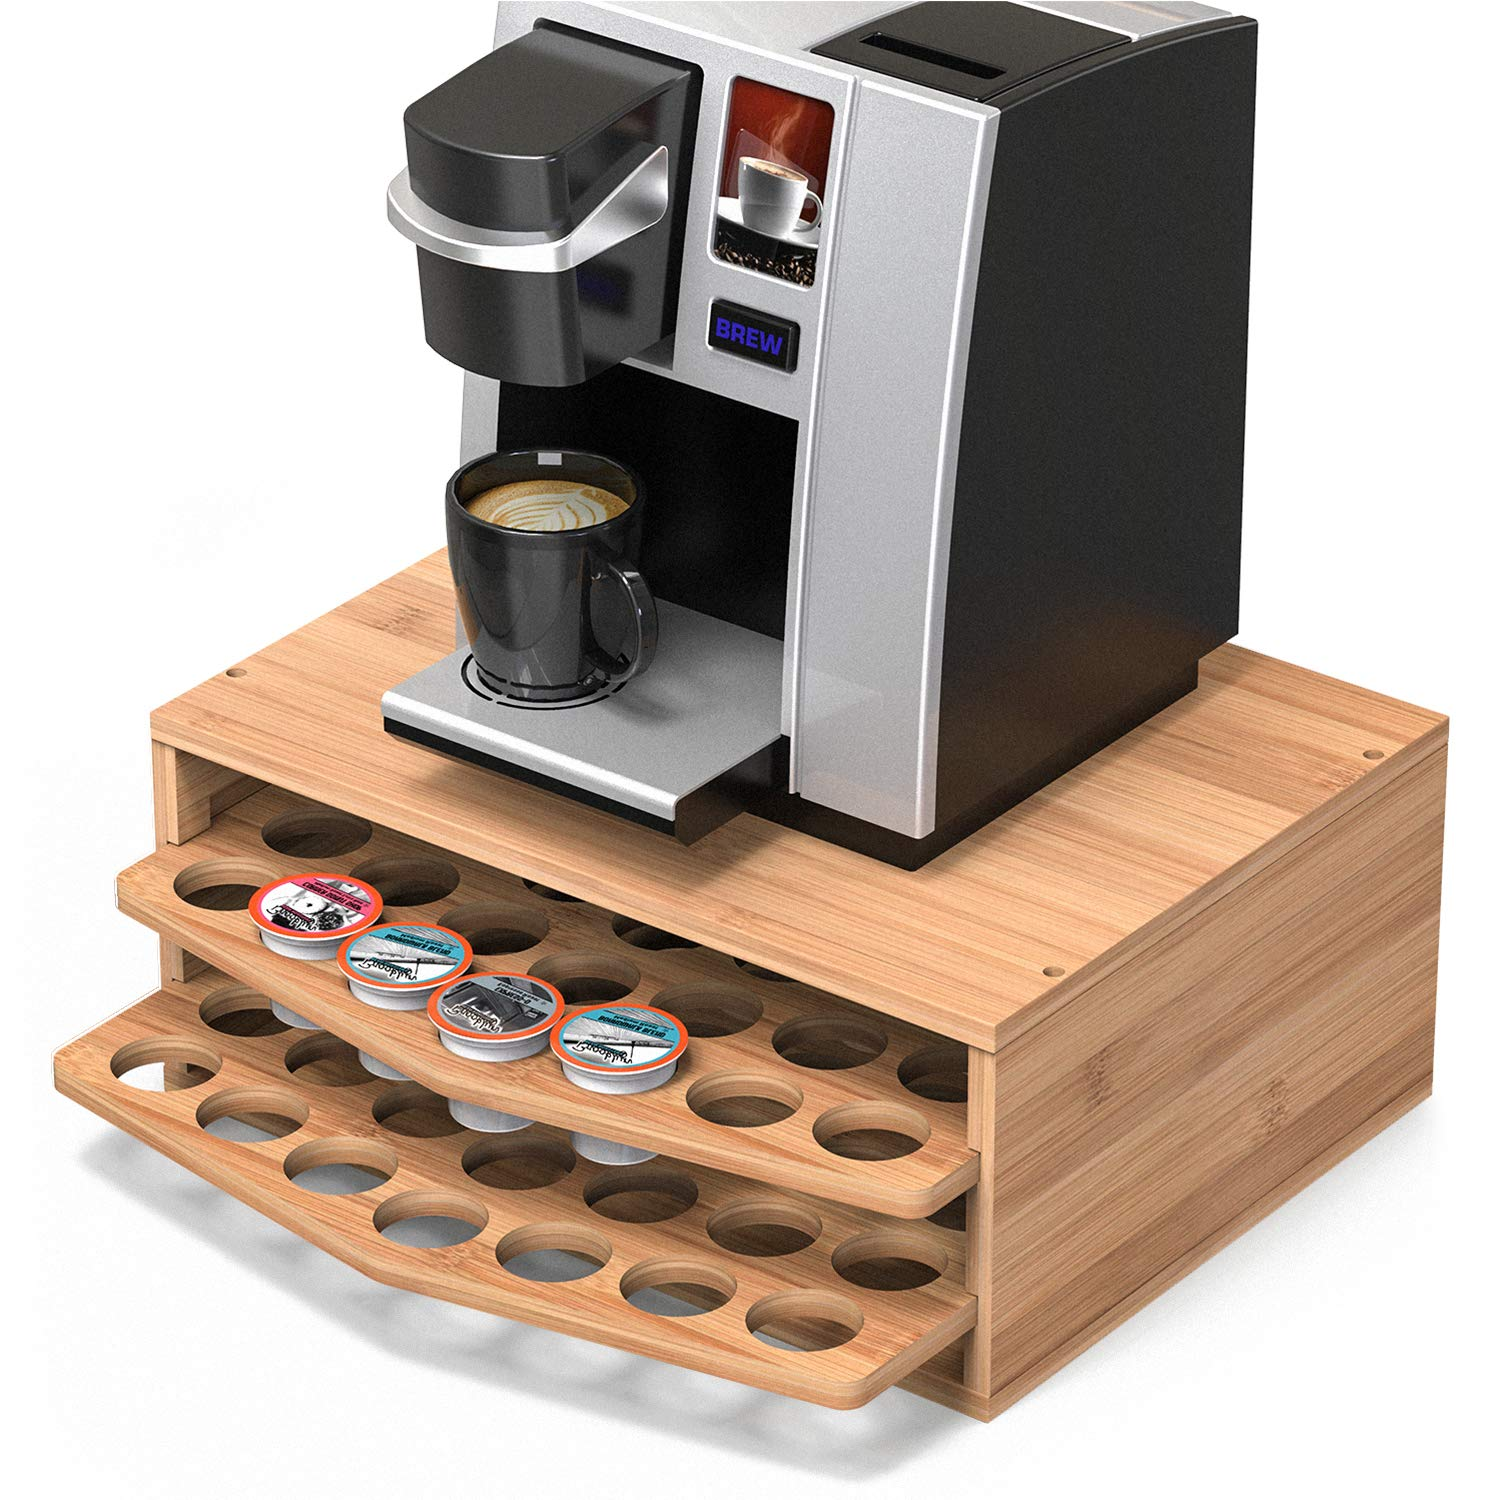 WELL WENG 70 Capacity 2-tier Bamboo Coffee Pod Holder Storage Organizer with Drawer for Keurig K-Cup Pods